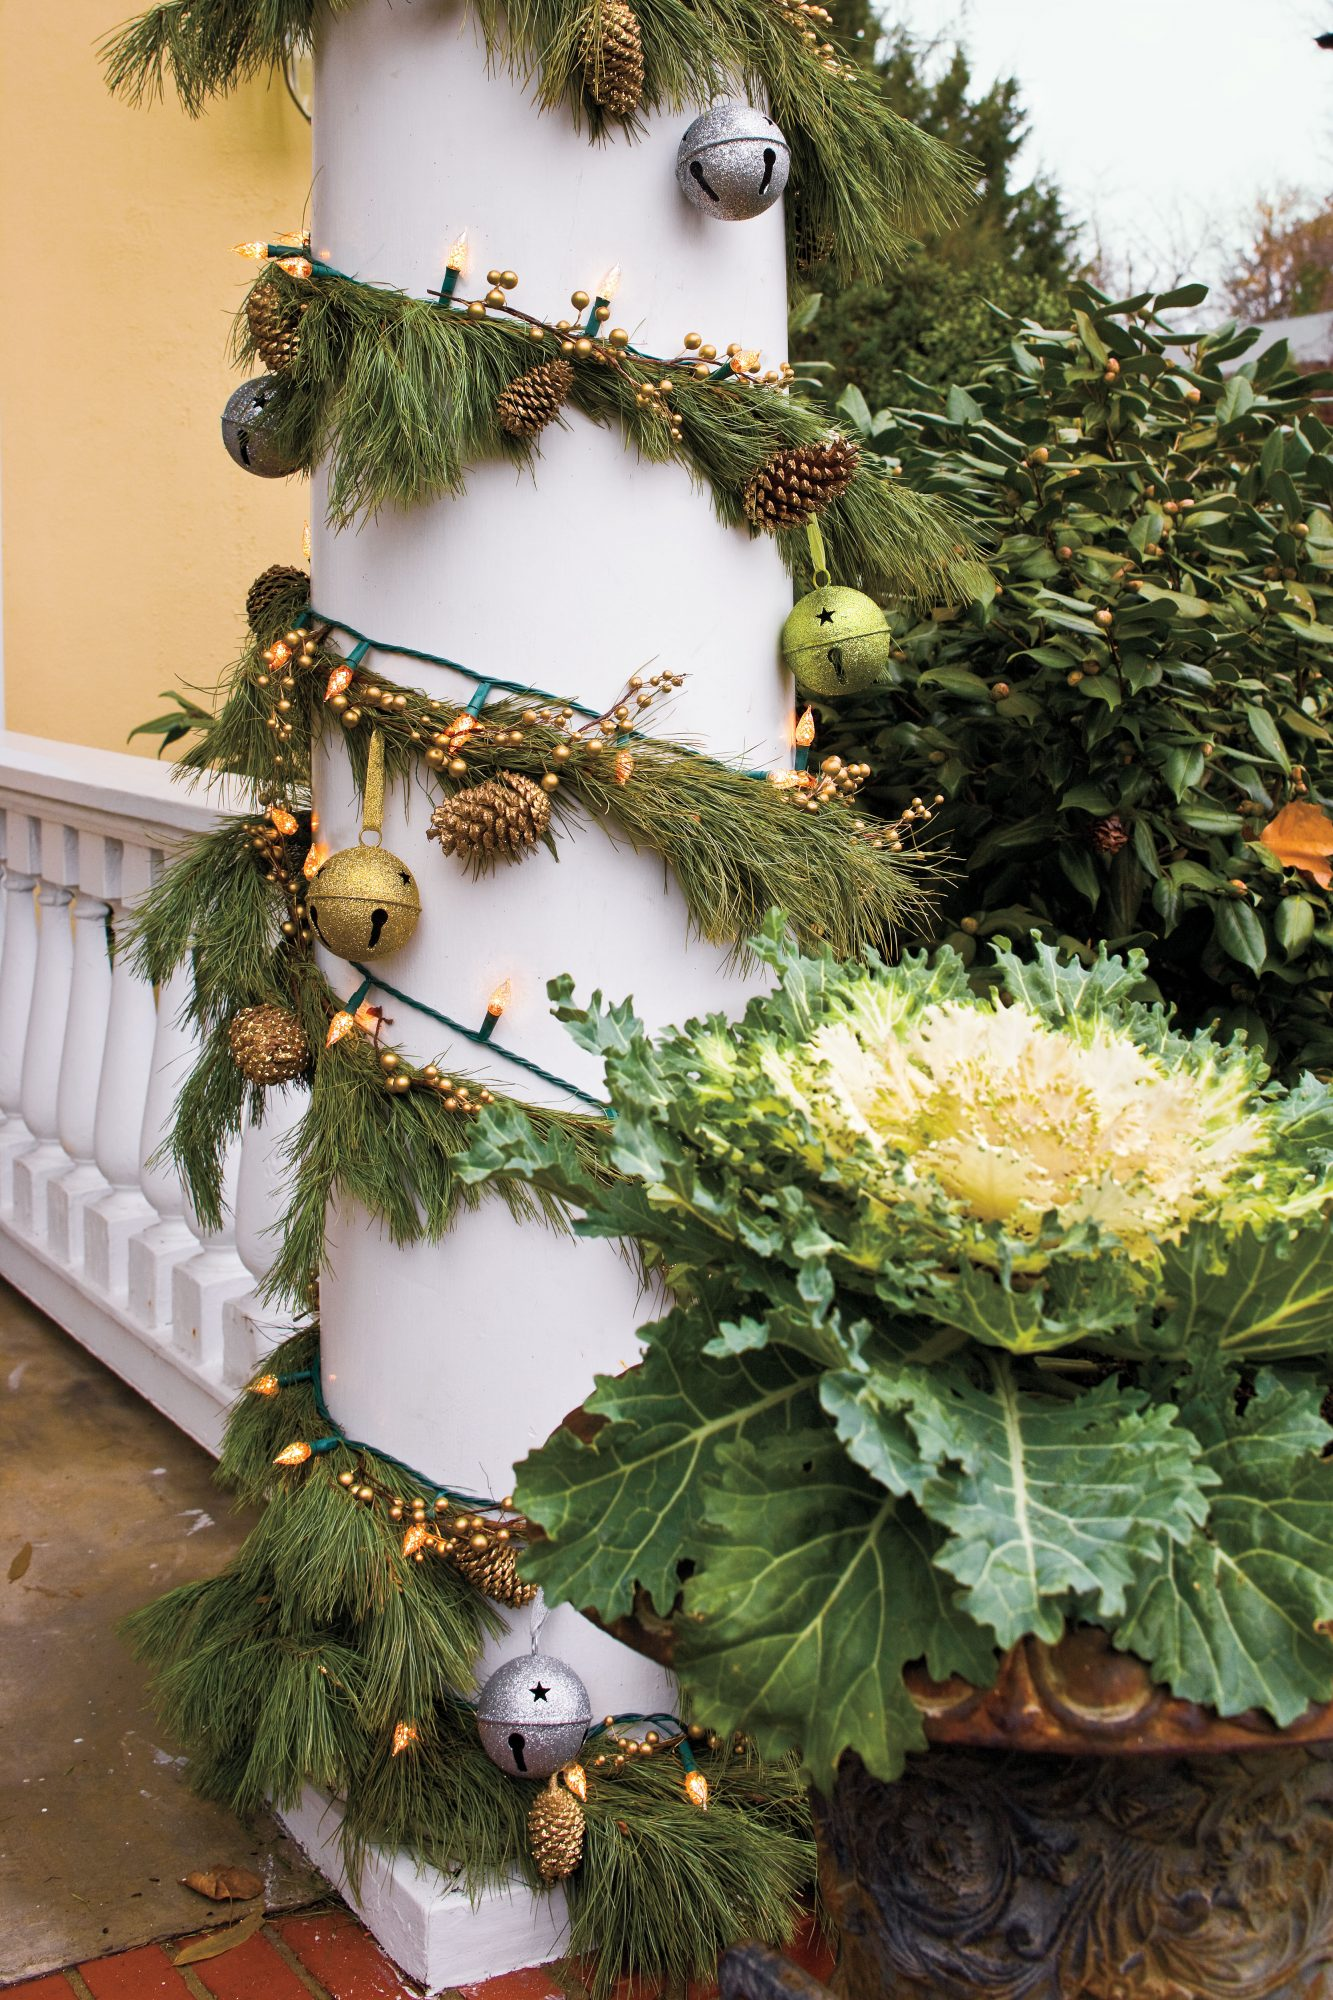 100 Best Ever Christmas Decorating Ideas for 2019